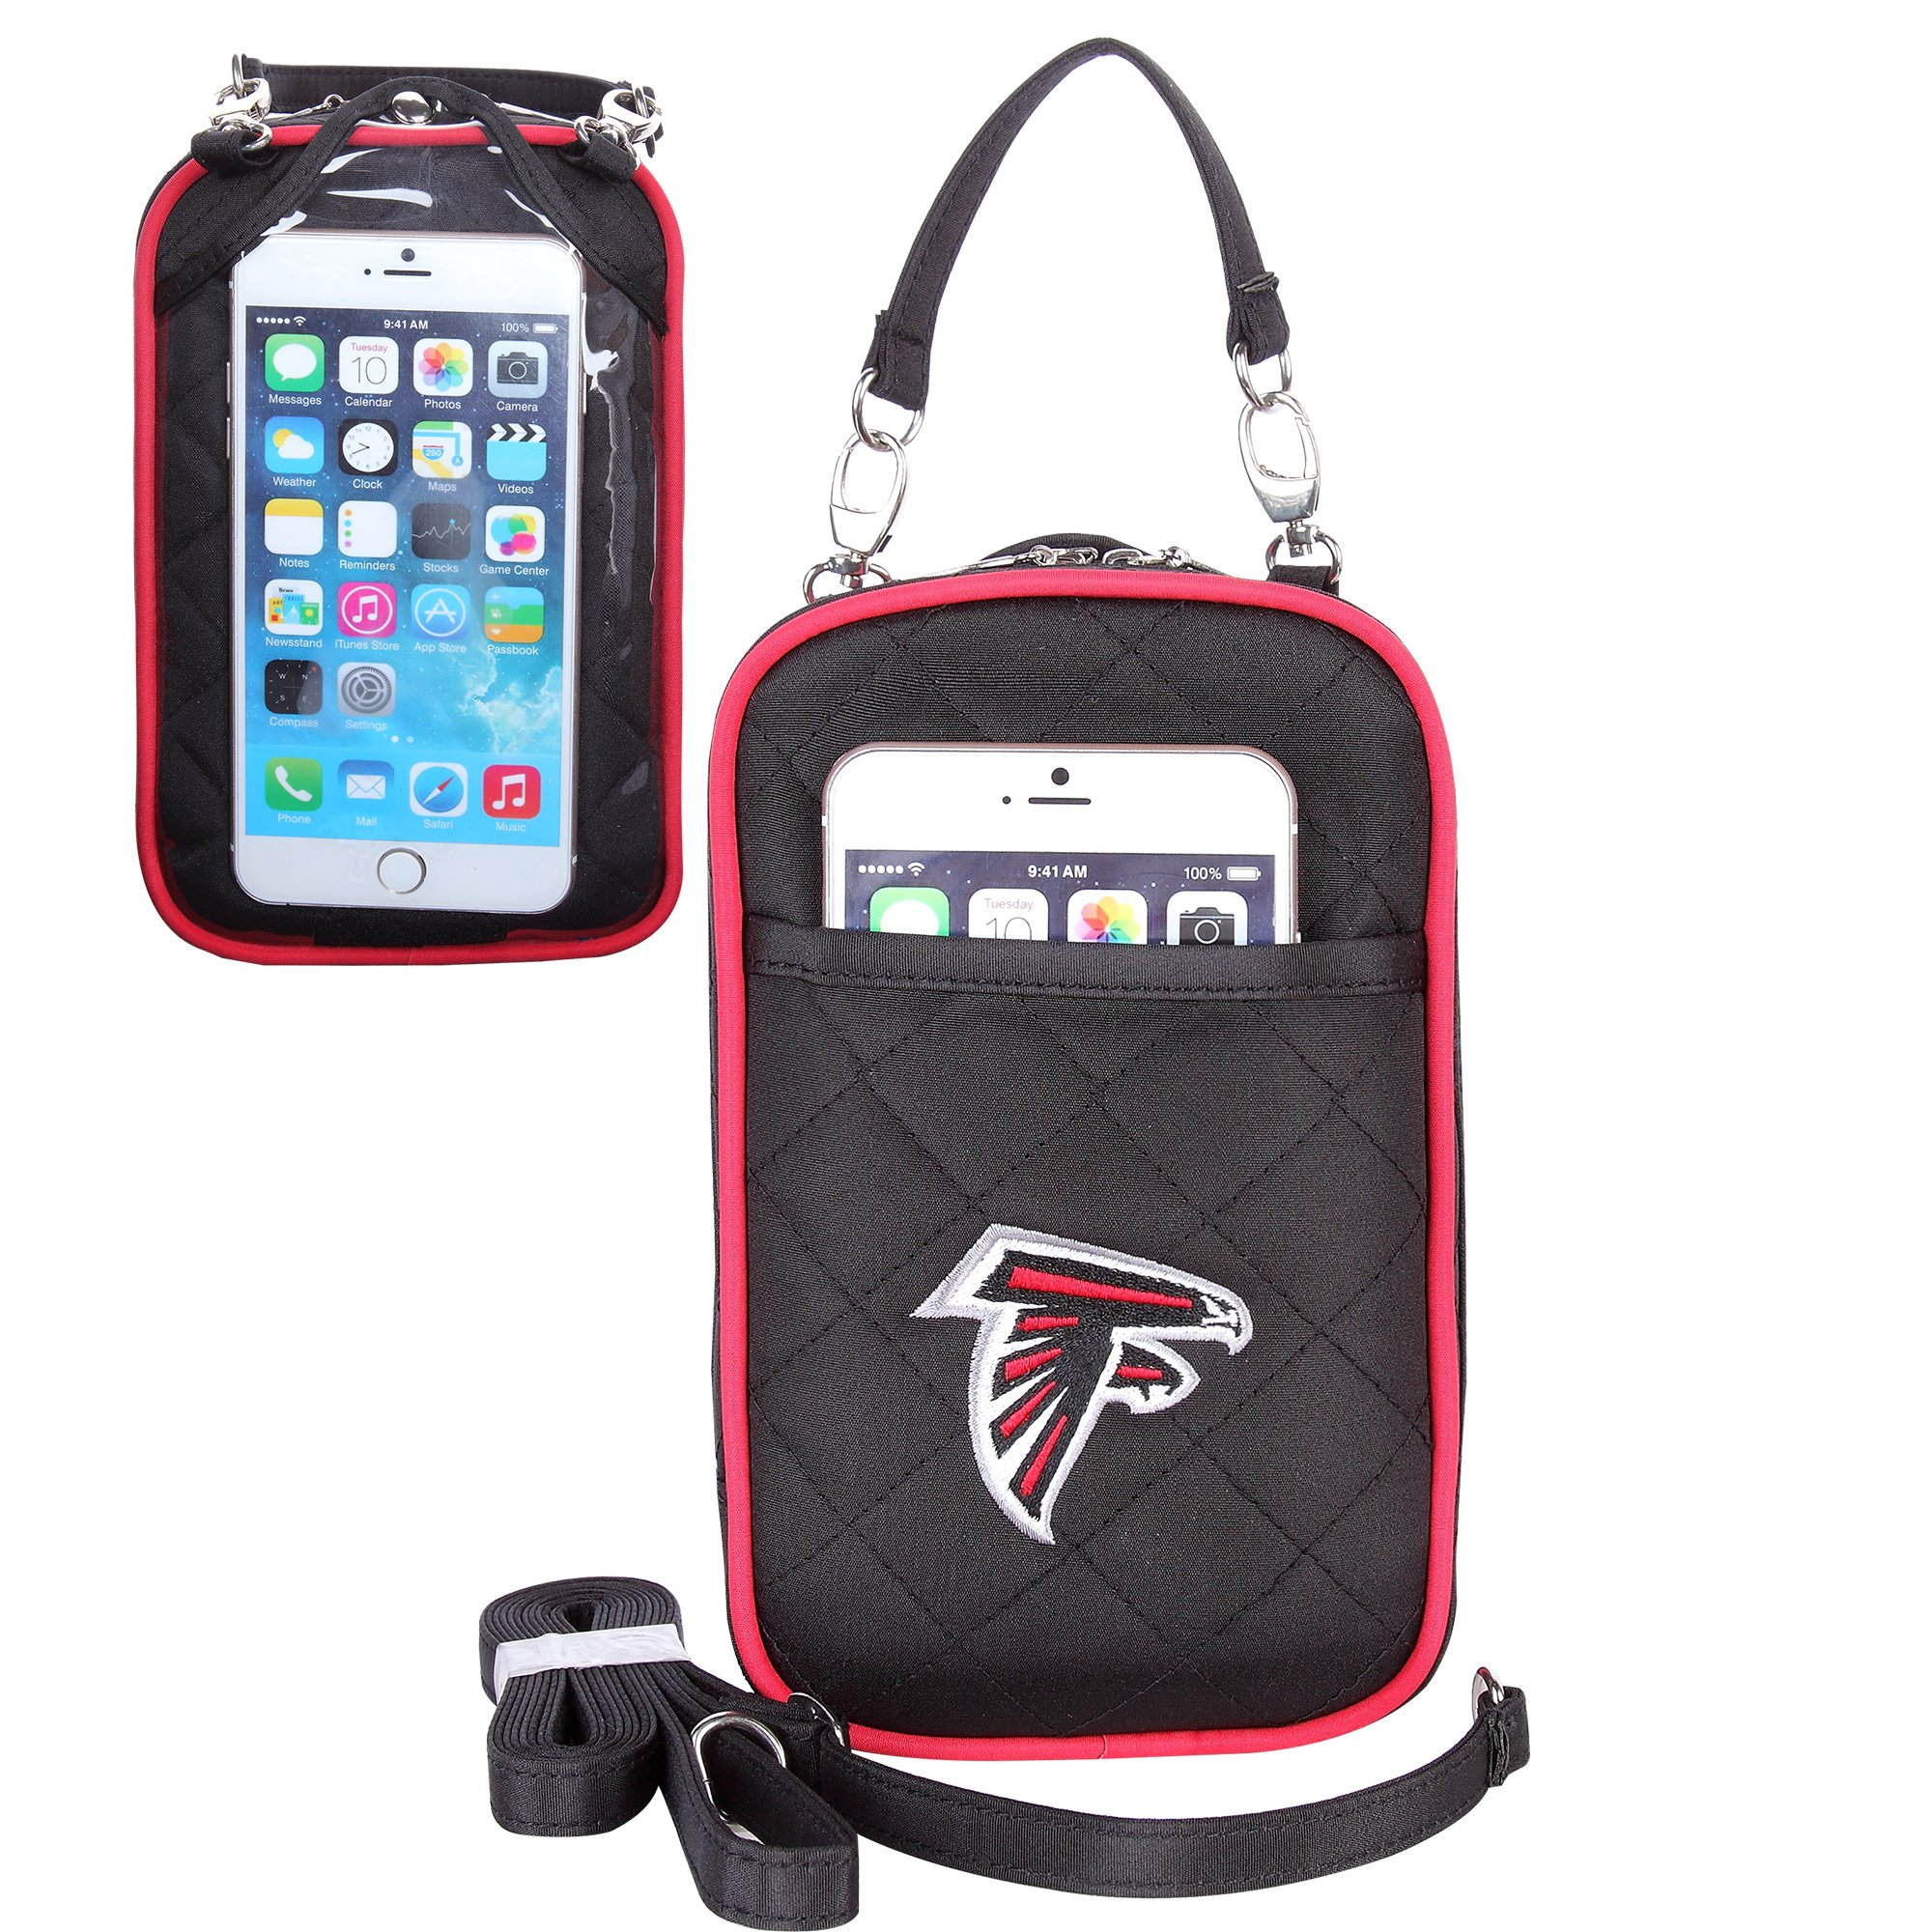 Charm14 NFL Atlanta Falcons Women's Crossbody Bag Quilt-Embroidered Logo-Fits All Phones by Little Earth